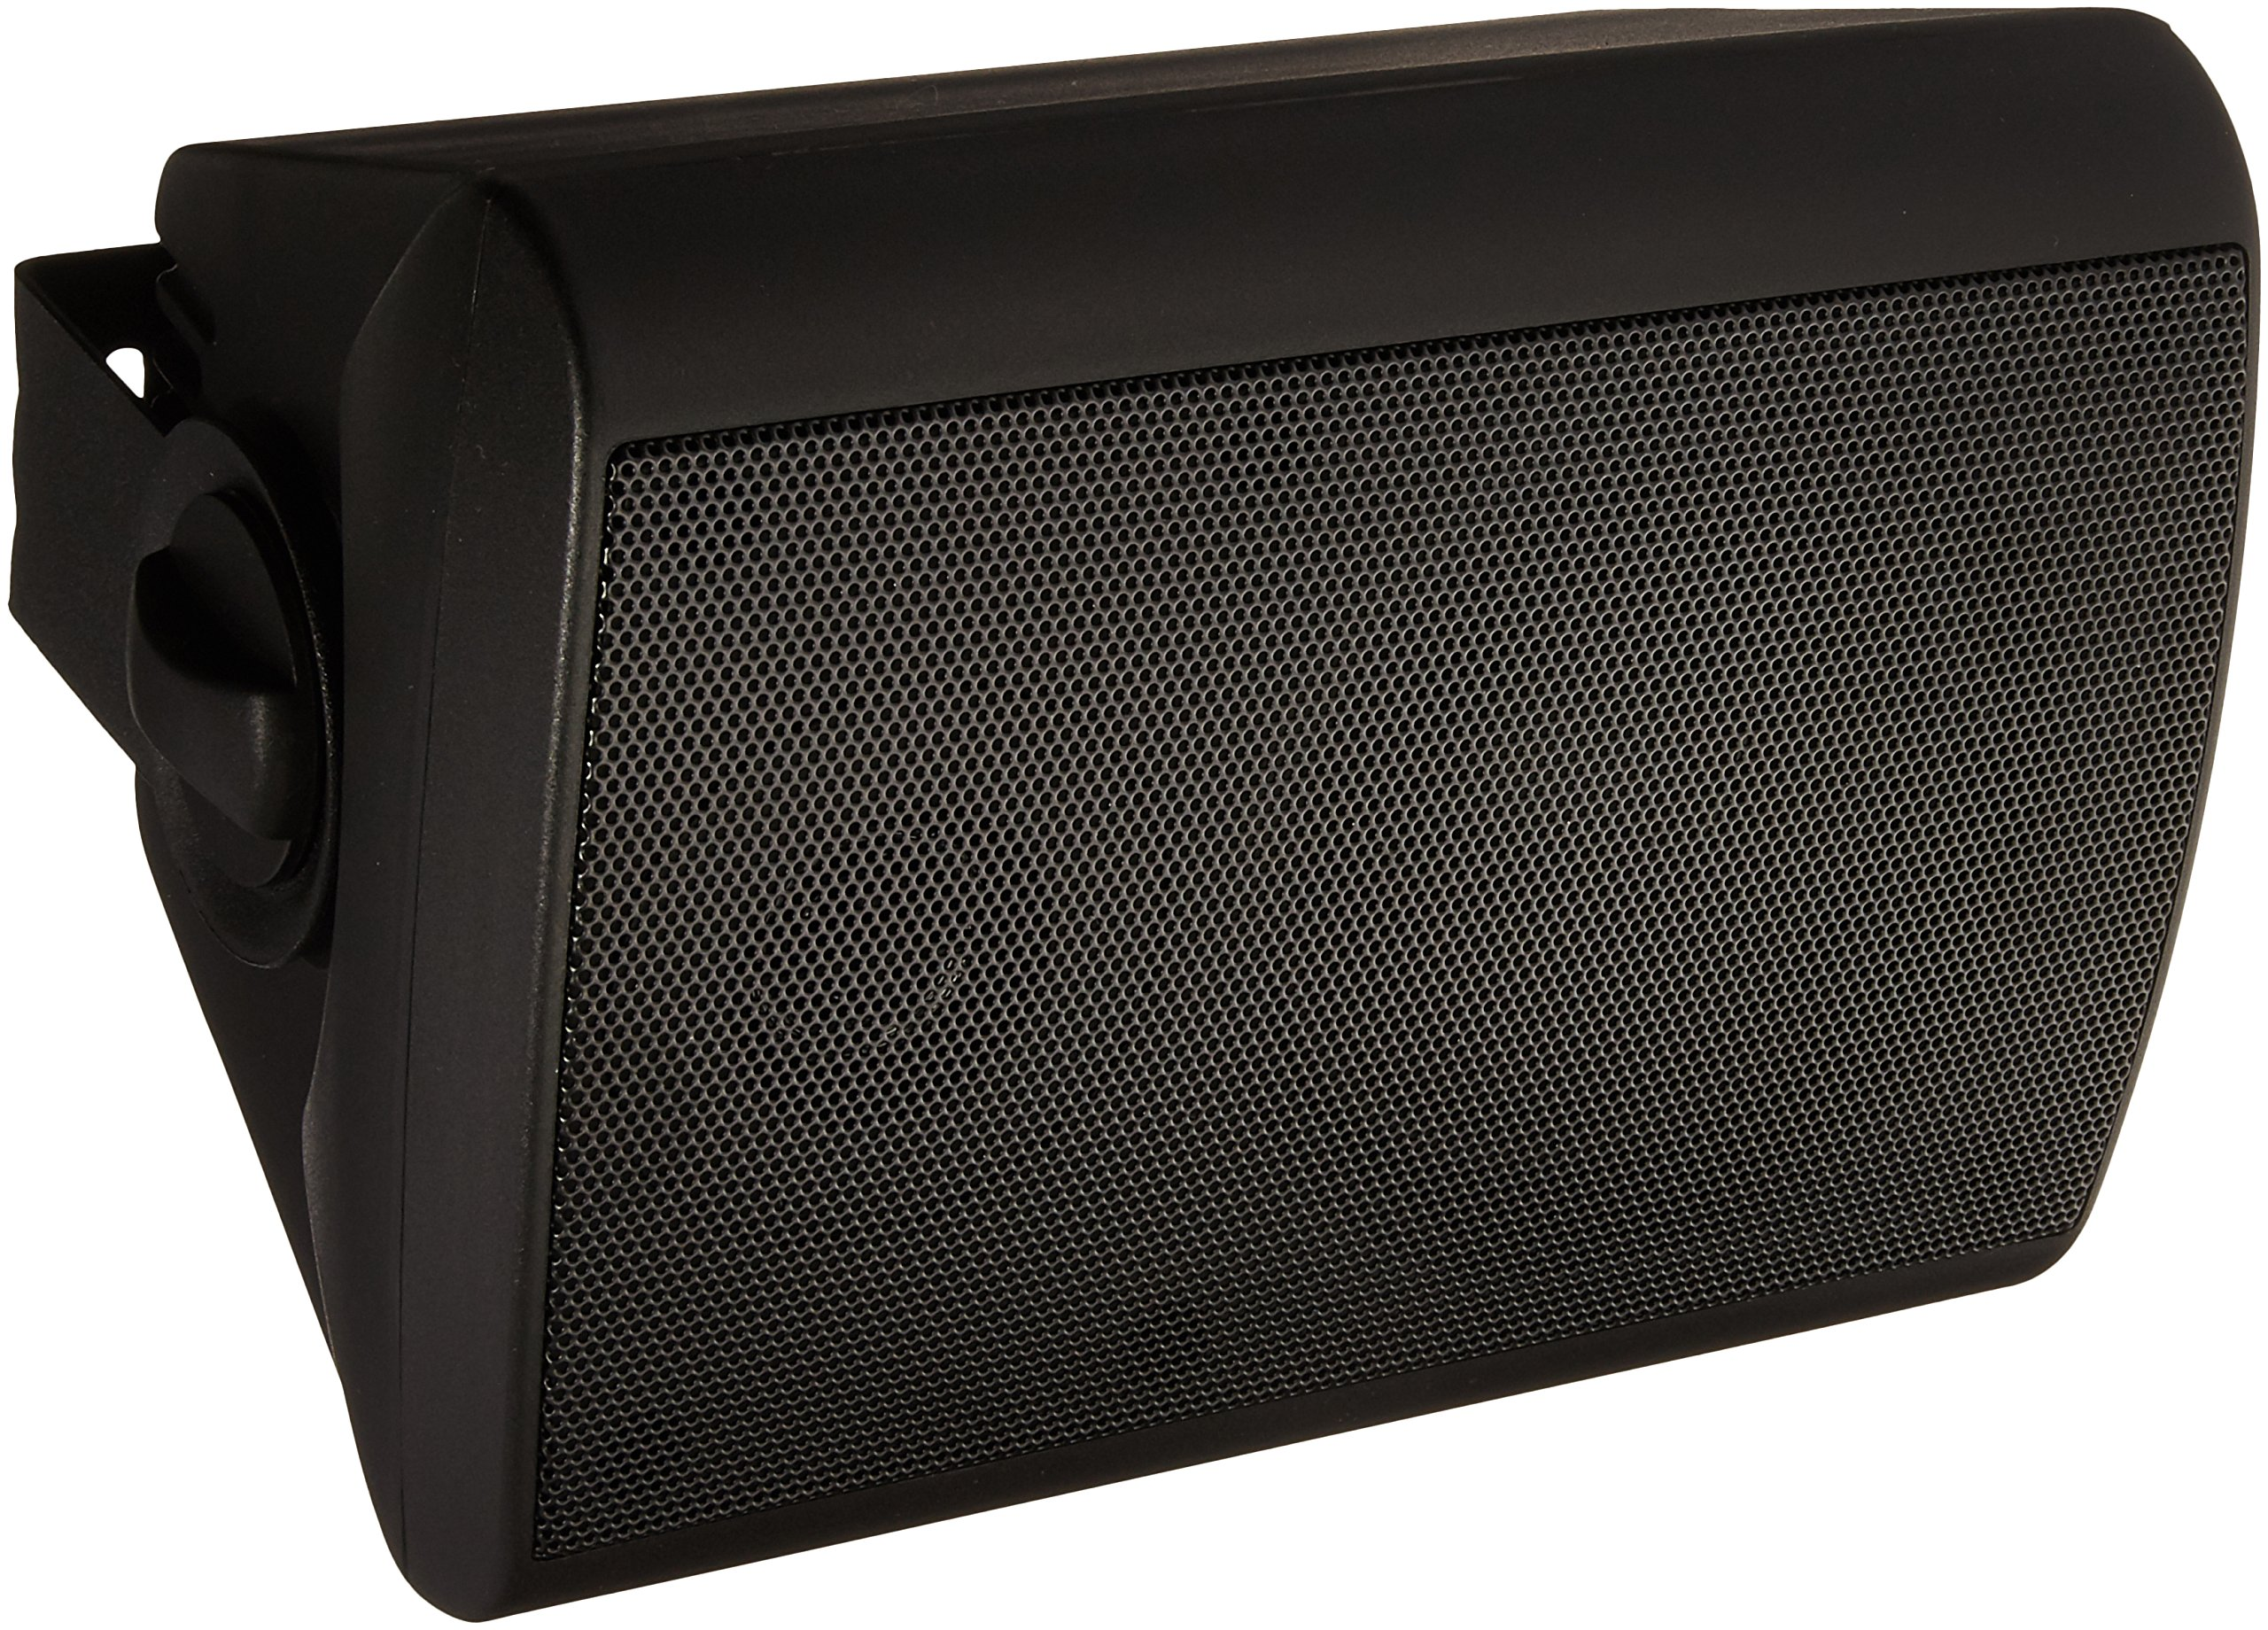 Theater Solutions TS425ODB Indoor/Outdoor Speaker (Black) by Theater Solutions